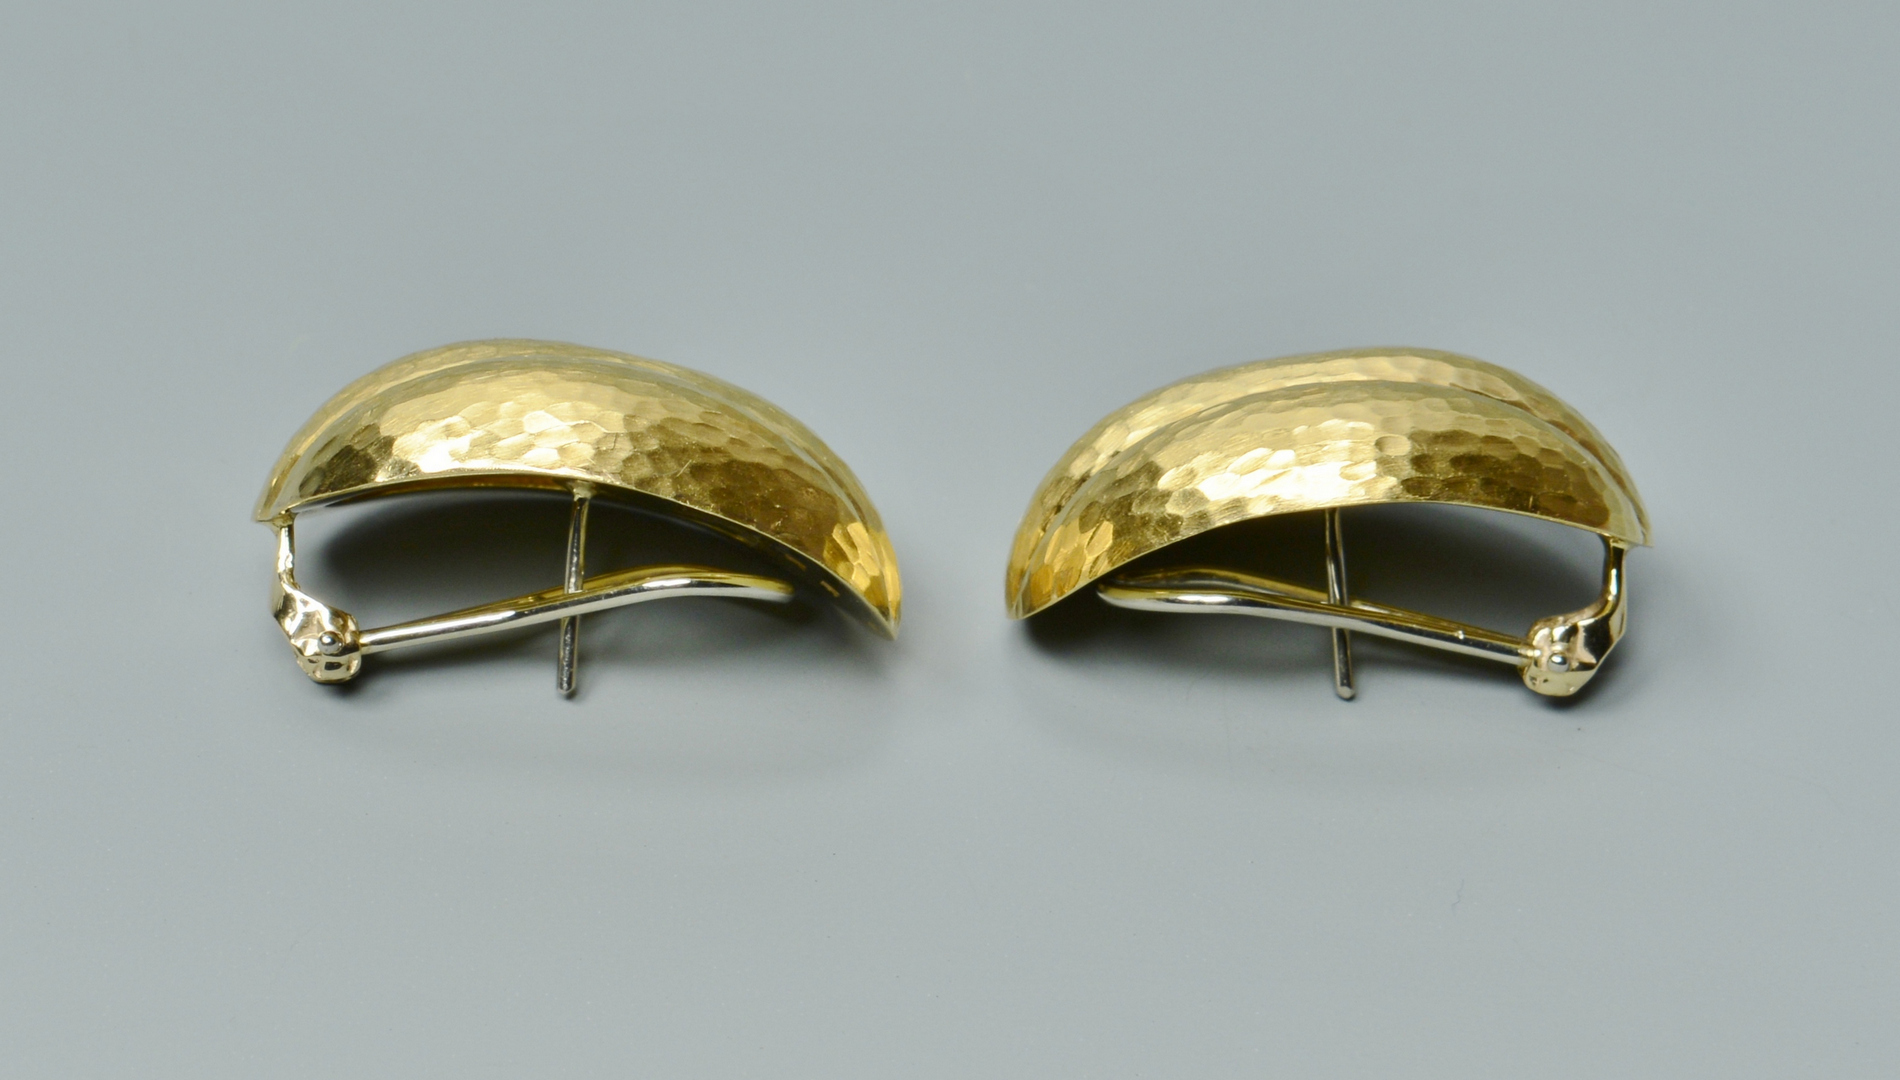 Lot 3088217: Pair 18k Hammered Earrings